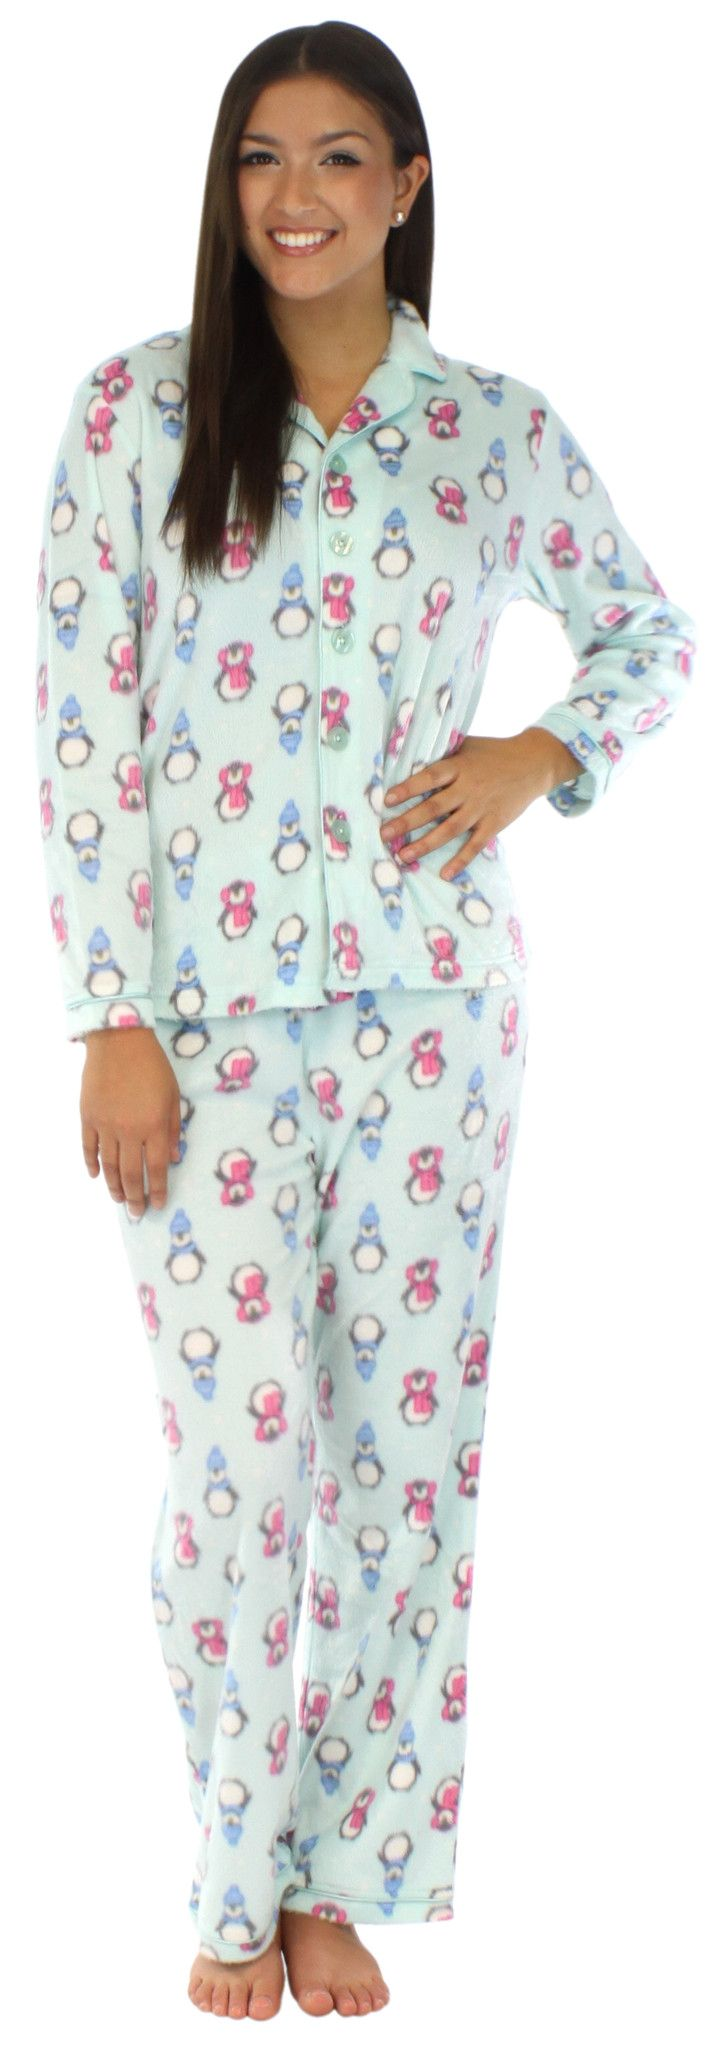 Frankie & Johnny long hair fleece pajamas have a minky feel and are super soft and comfortable with just enough stretch that you will want to wear them all day long - Fleece - Long sleeve - Notched co